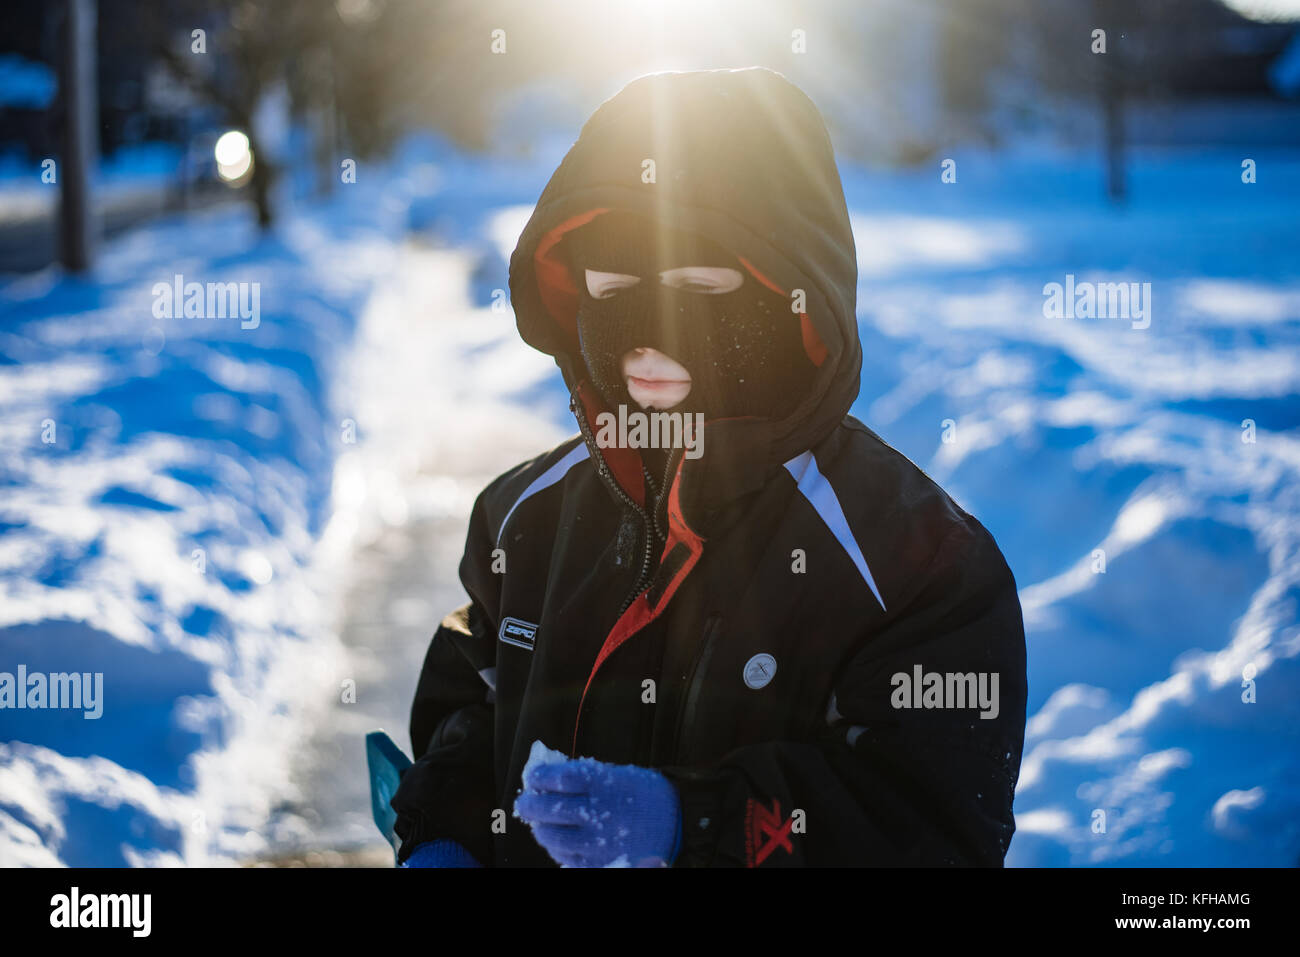 10-11 year old boy standing in snow with ski mask Stock Photo